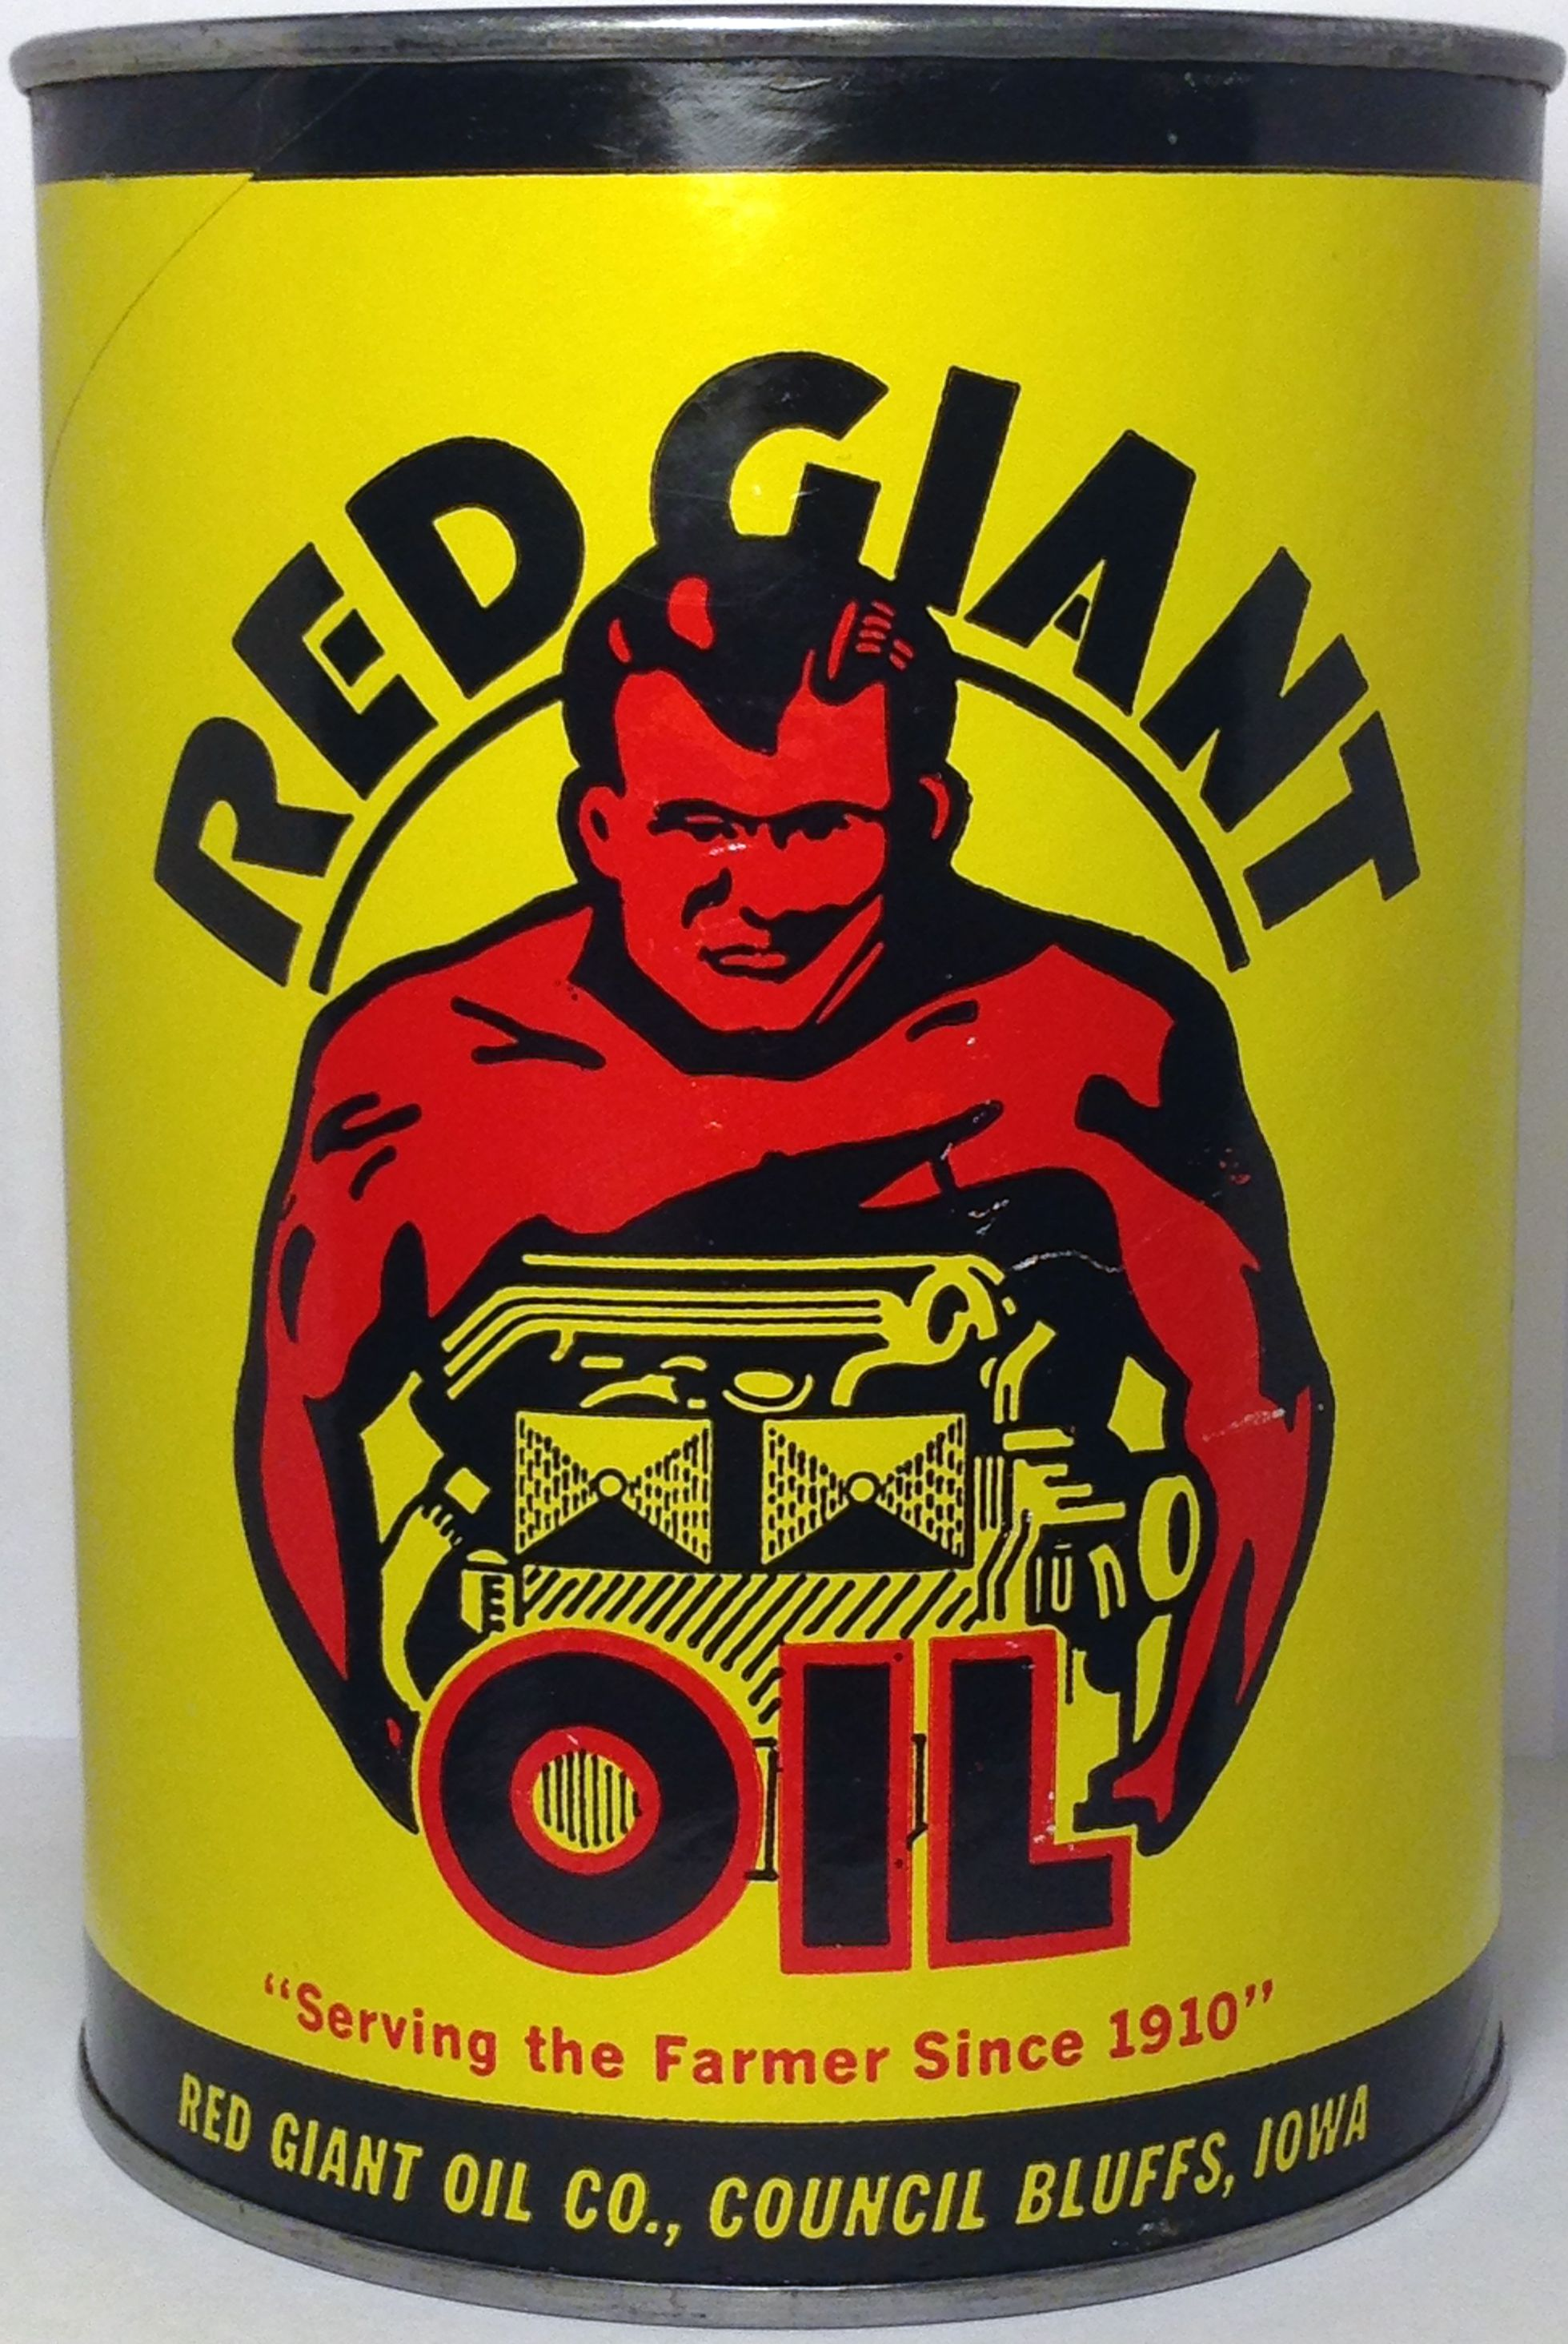 RED GIANT OIL CAN - FRONT | Collectible oil cans and other ...